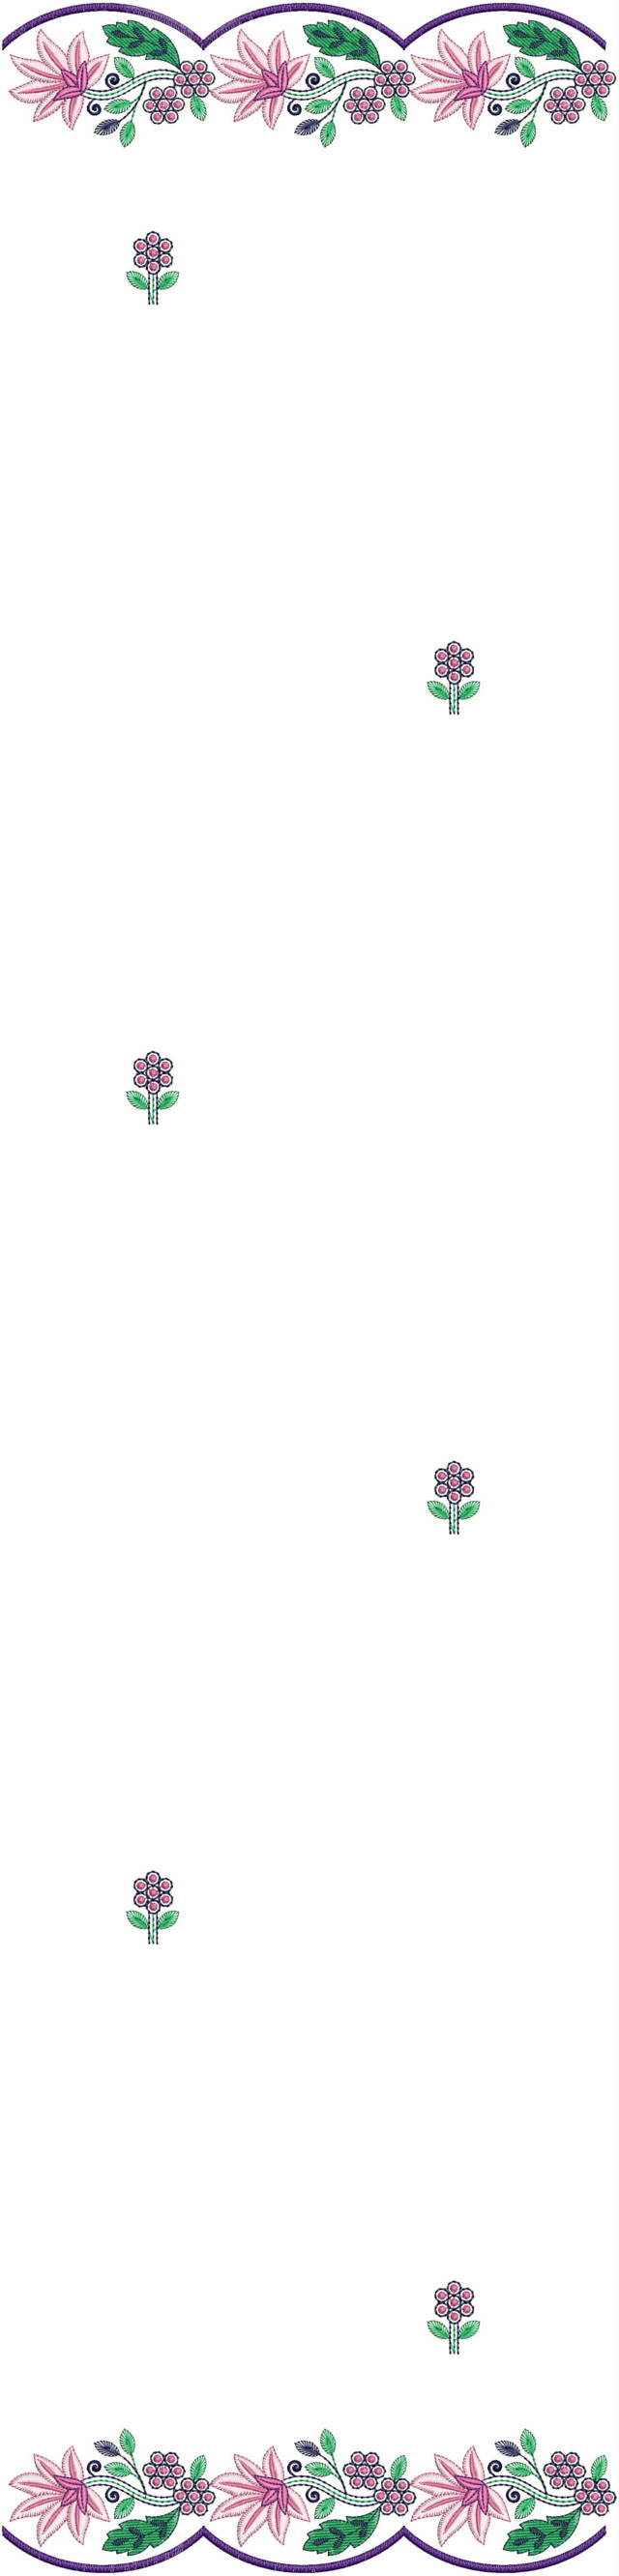 Flowers concept Duptta embroidery  design